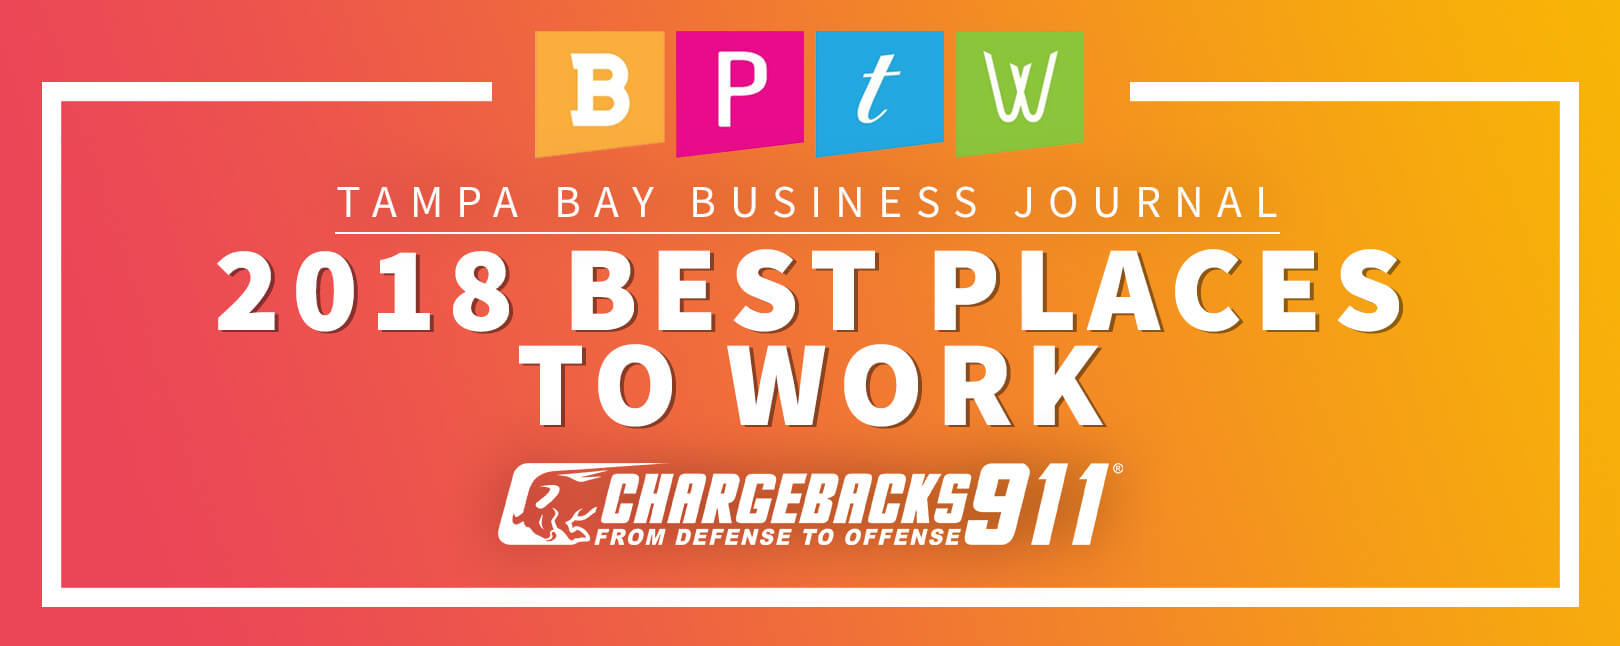 Chargebacks911-Press-Best-Place-to-Work-2018